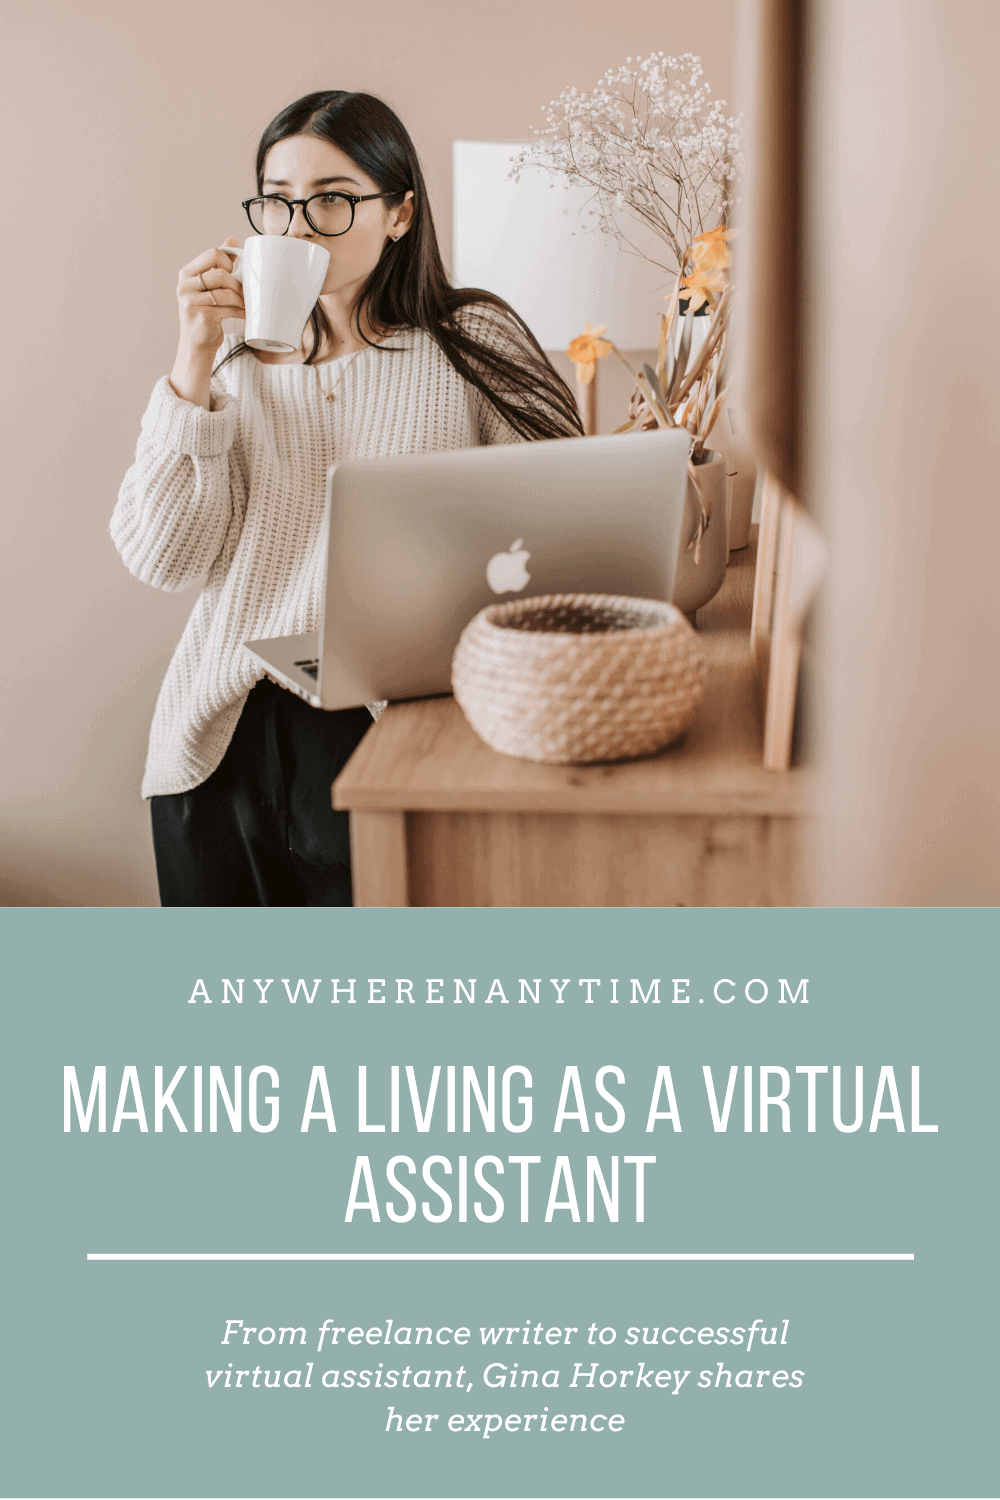 Making a Living as a Virtual Assistant - An Interview with Gina Horkey